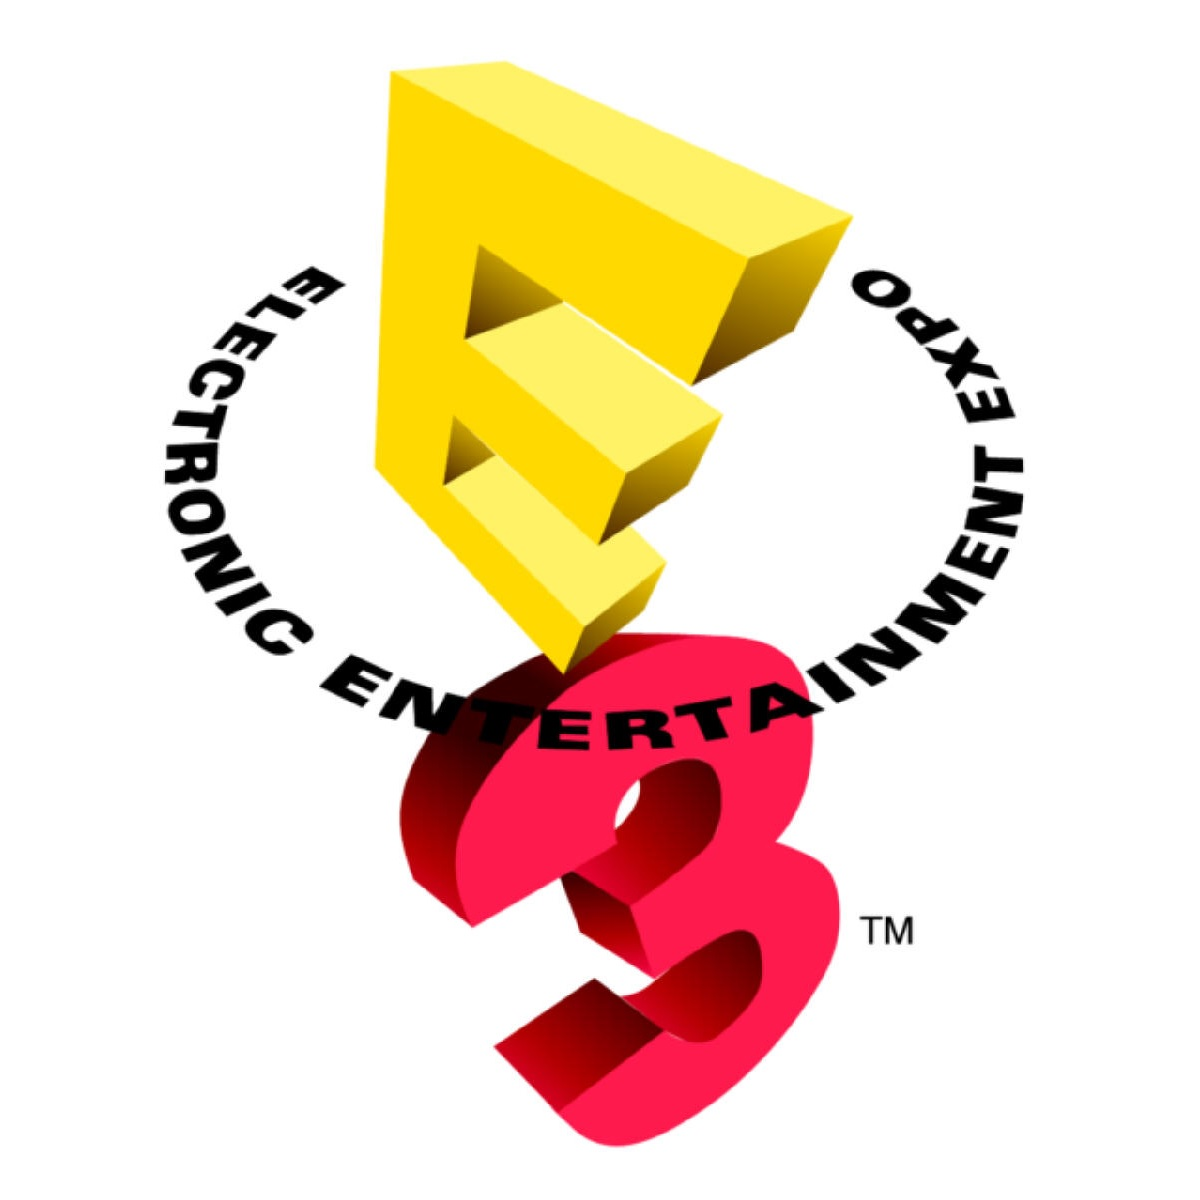 The Scotchcast E3 2018 - EA, Microsoft & Bethesda